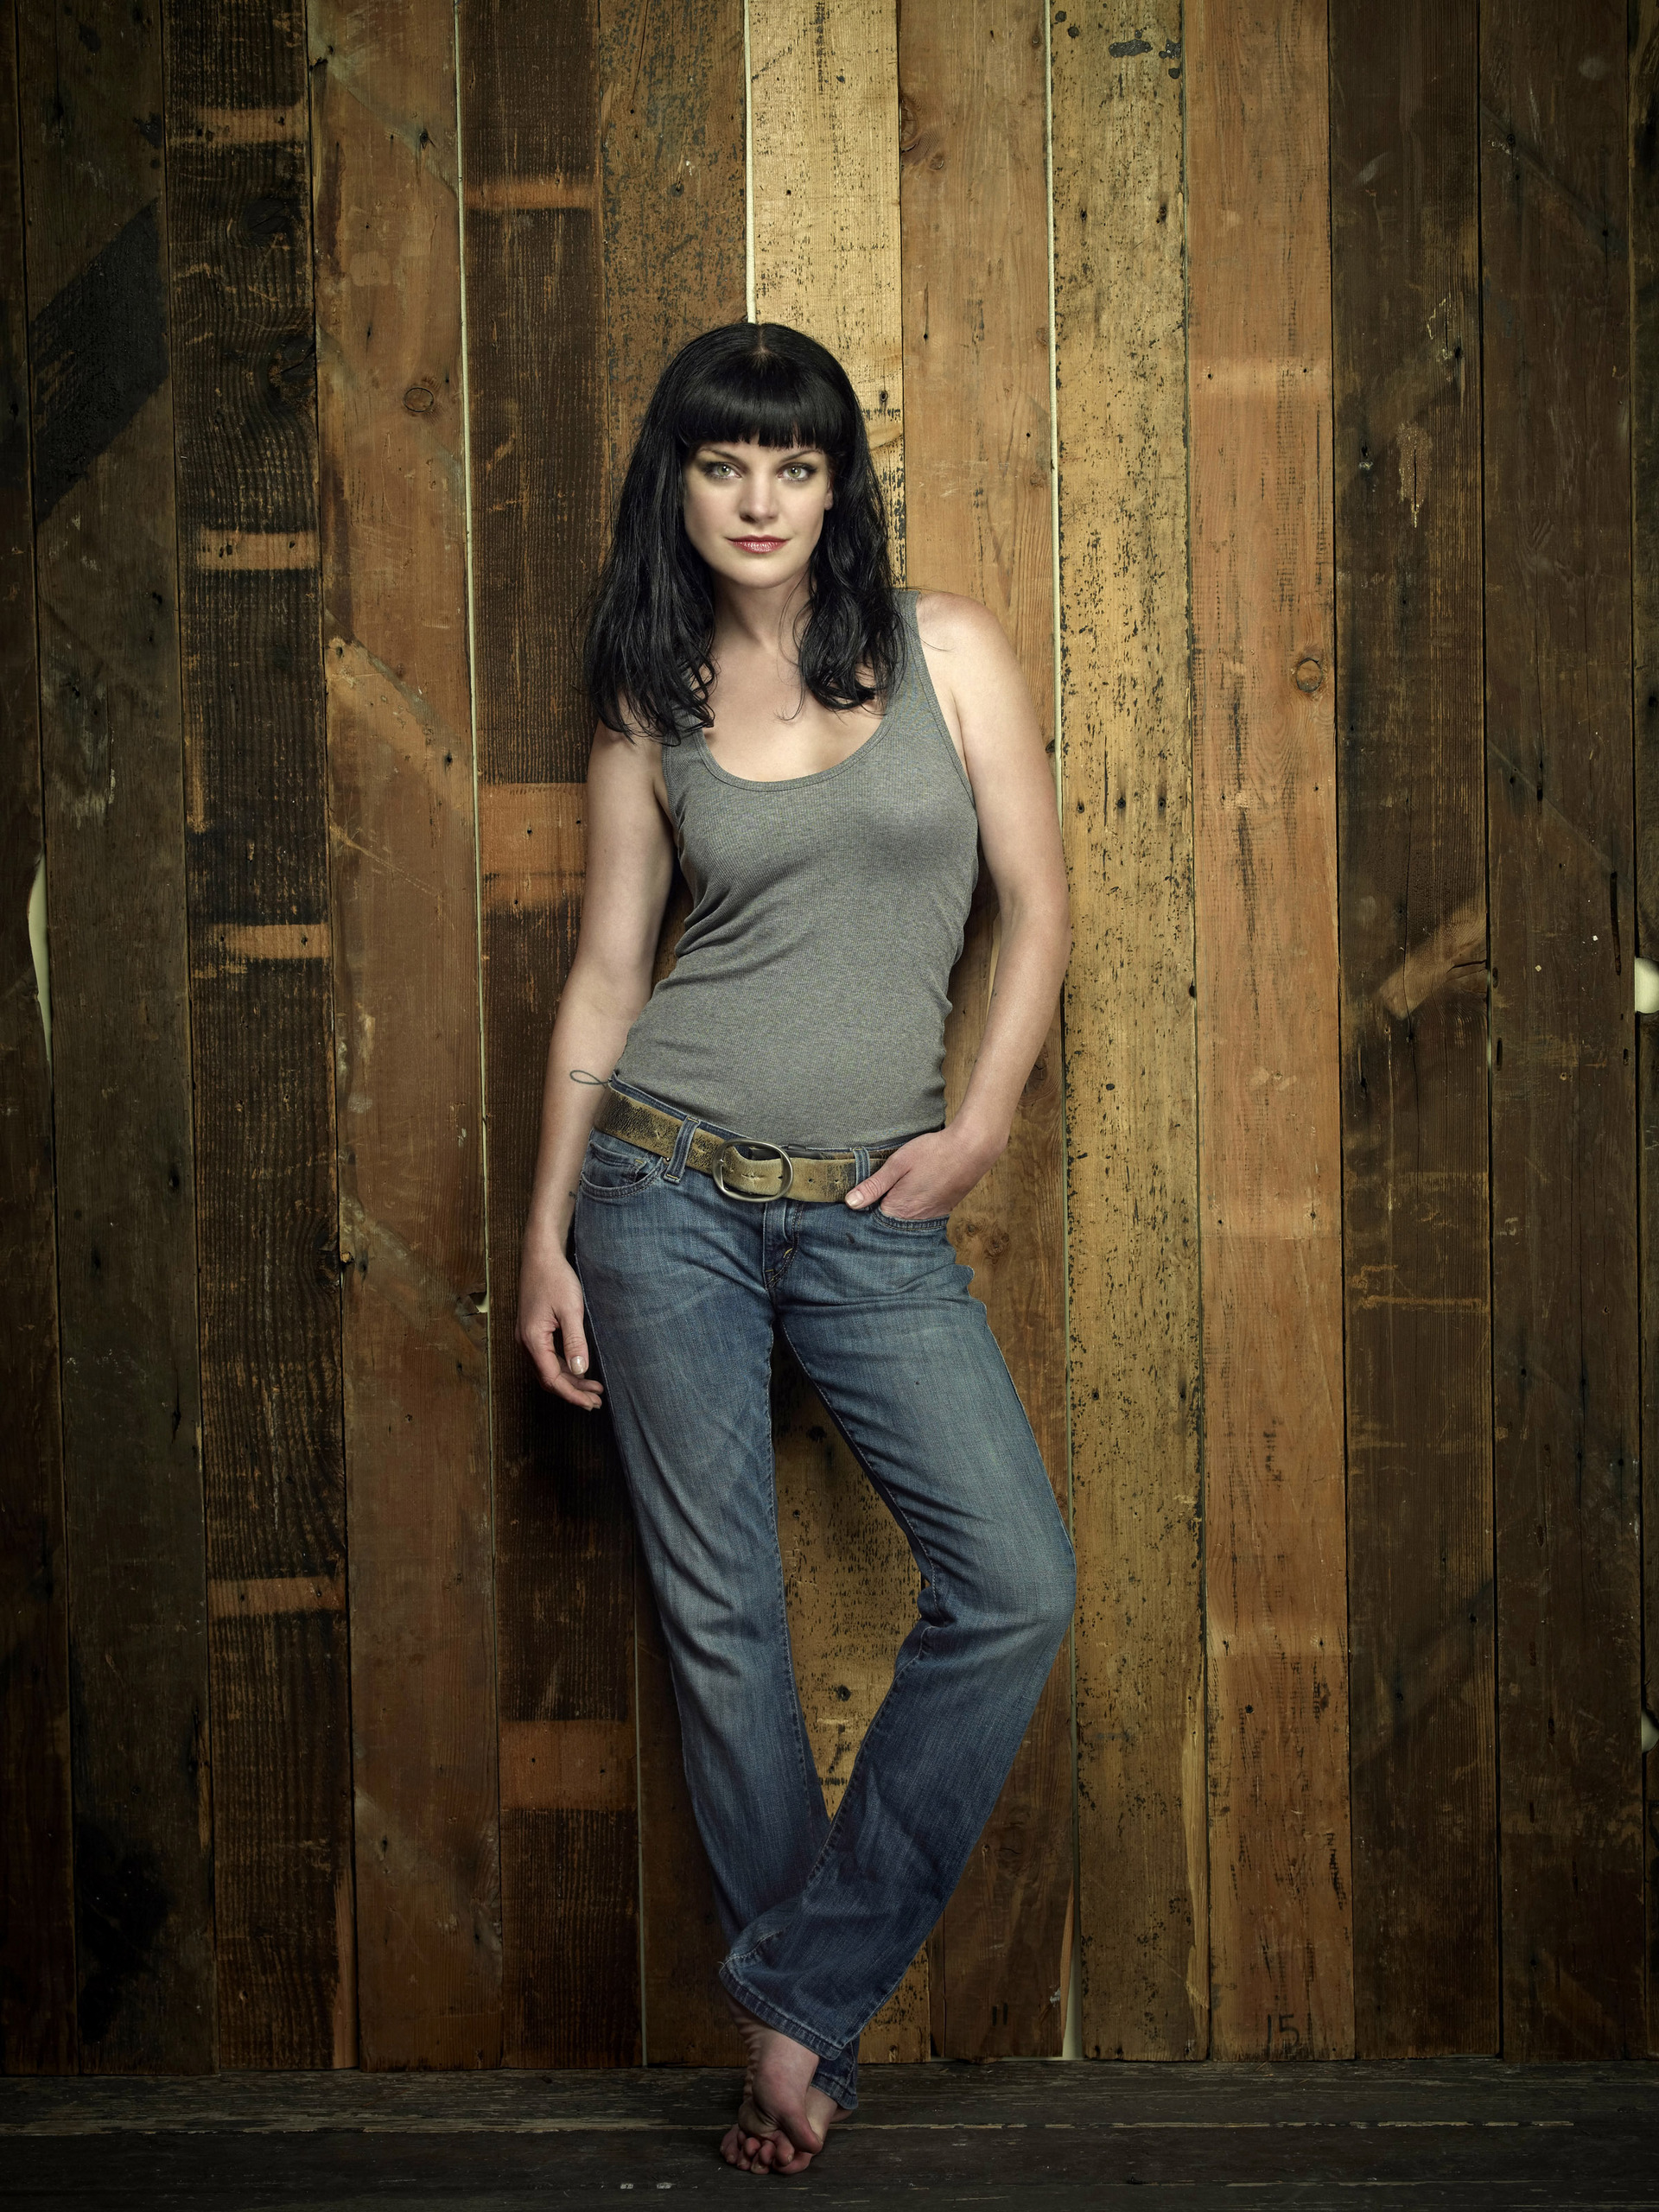 Hot Pictures Of Pauley Perrette 31